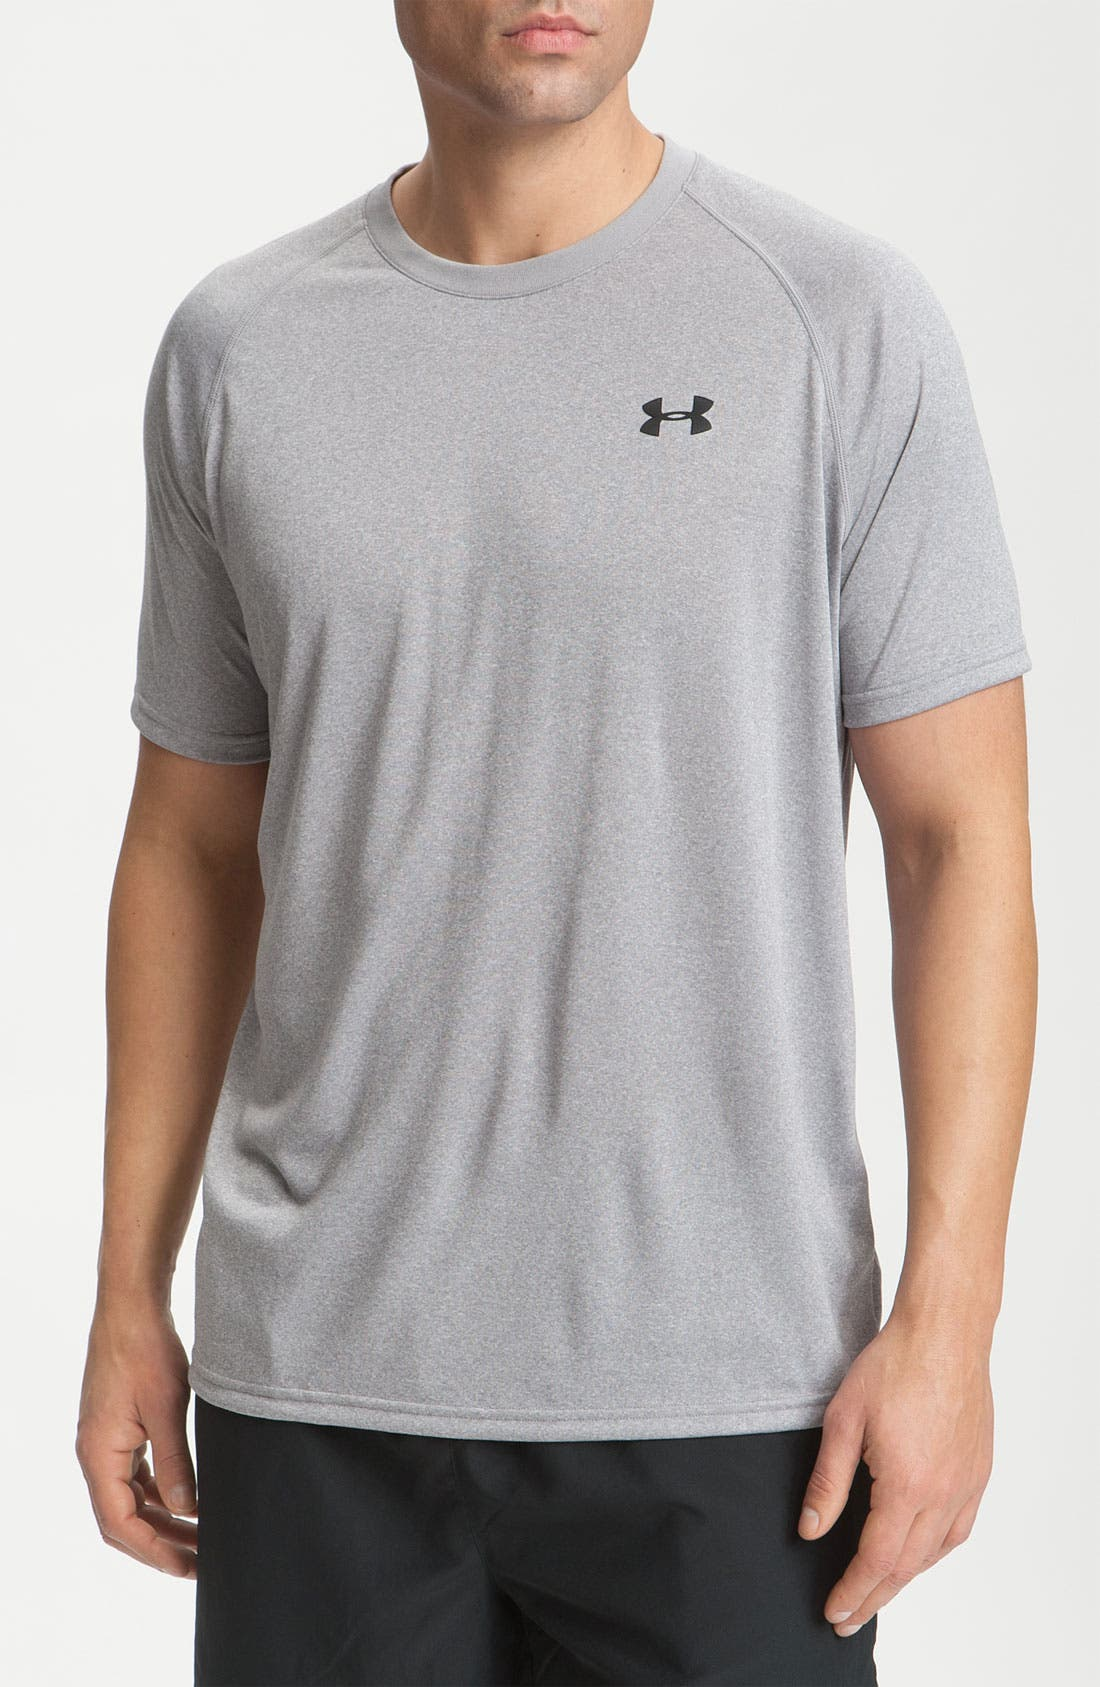 'UA Tech' Loose Fit Short Sleeve T-Shirt,                         Main,                         color, True Grey Heather